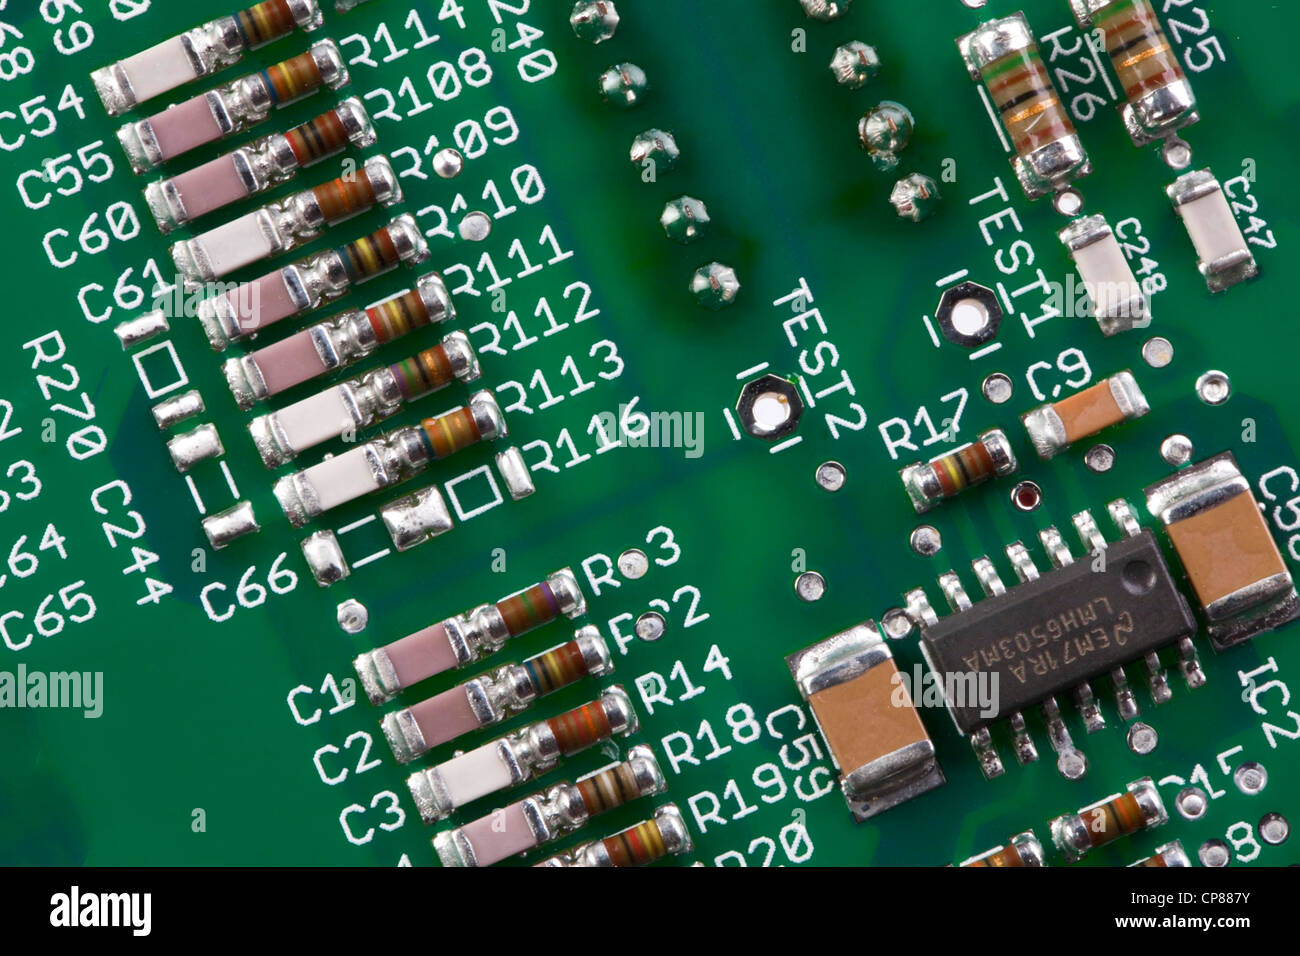 Detail of a computer circuit board, Detail einer Computer-Platine - Stock Image